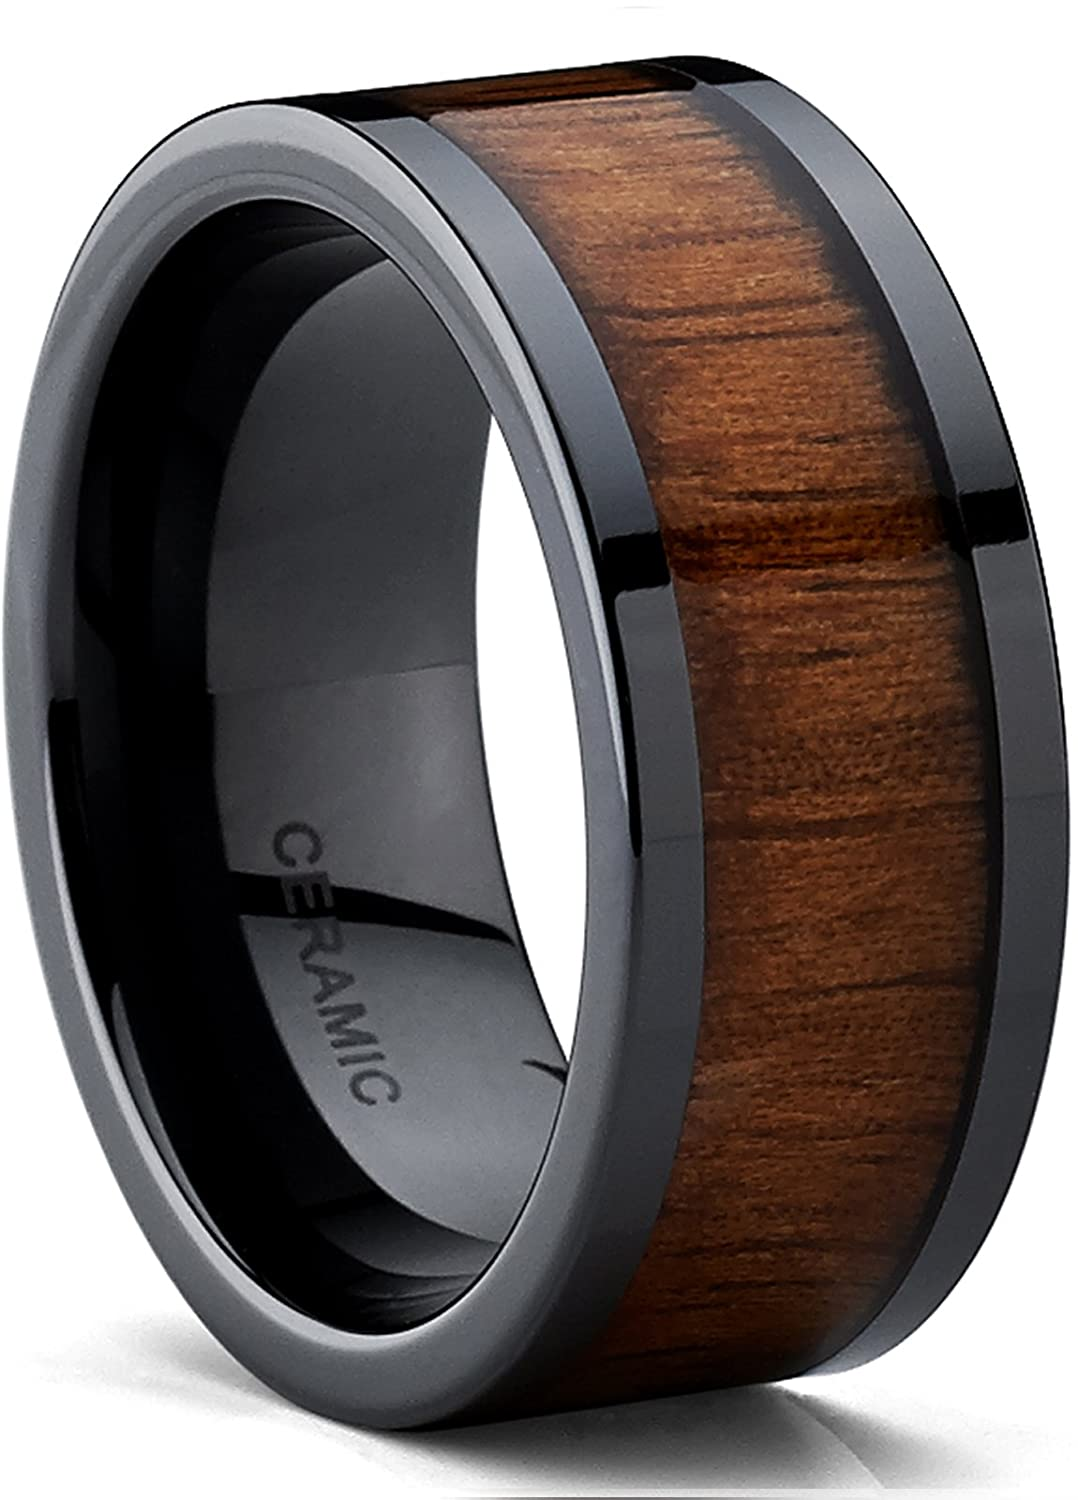 Metal Masters Co. Black Ceramic Flat Top Wedding Band Ring with Real Koa Wood Inlay, 9MM Comfort Fit CRX-0038